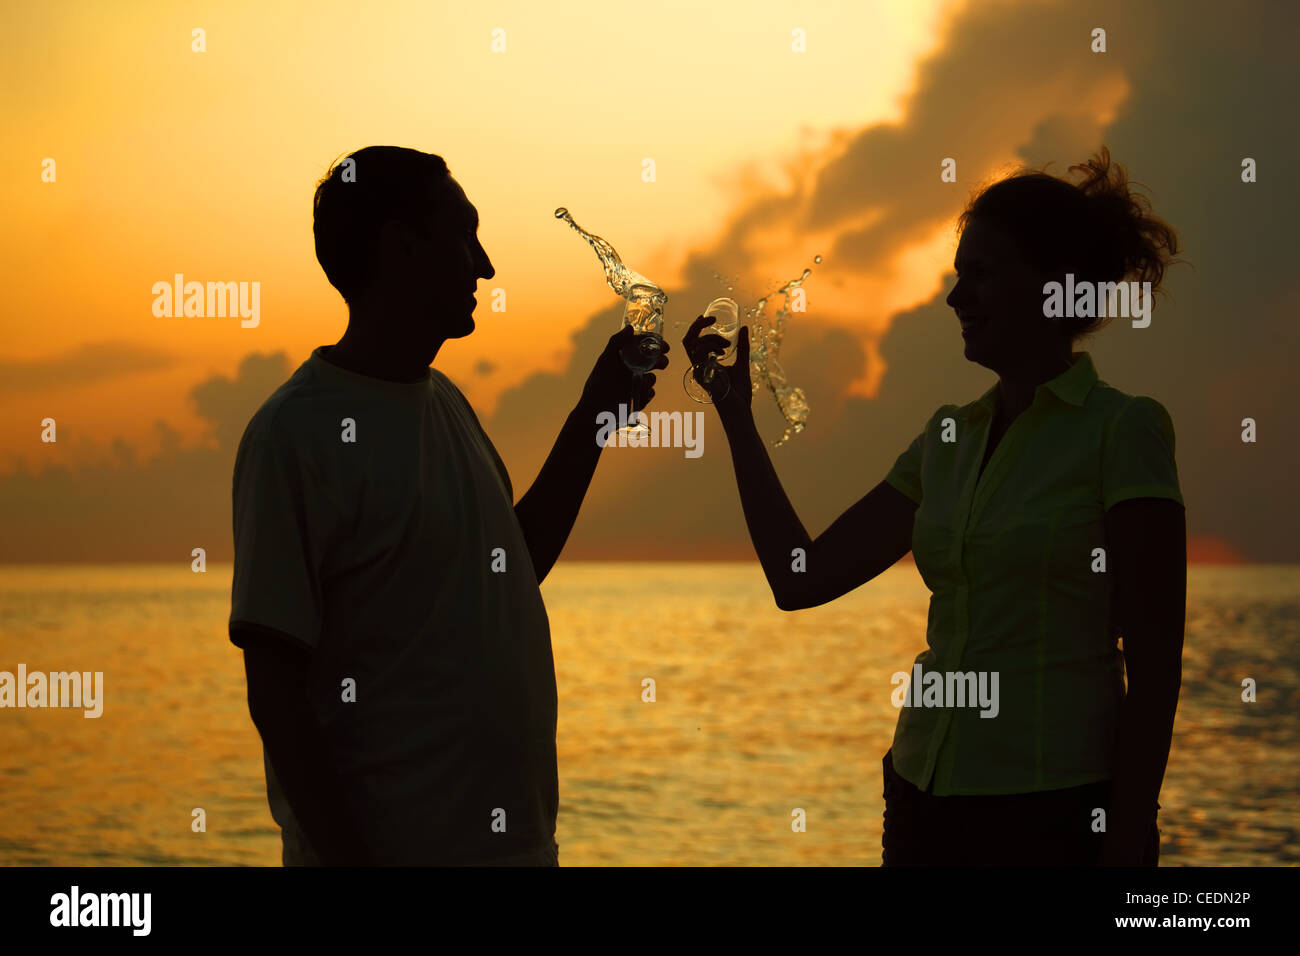 Man and woman clink glasses. Splashes of wine from glasses. Silhouettes against sea. - Stock Image